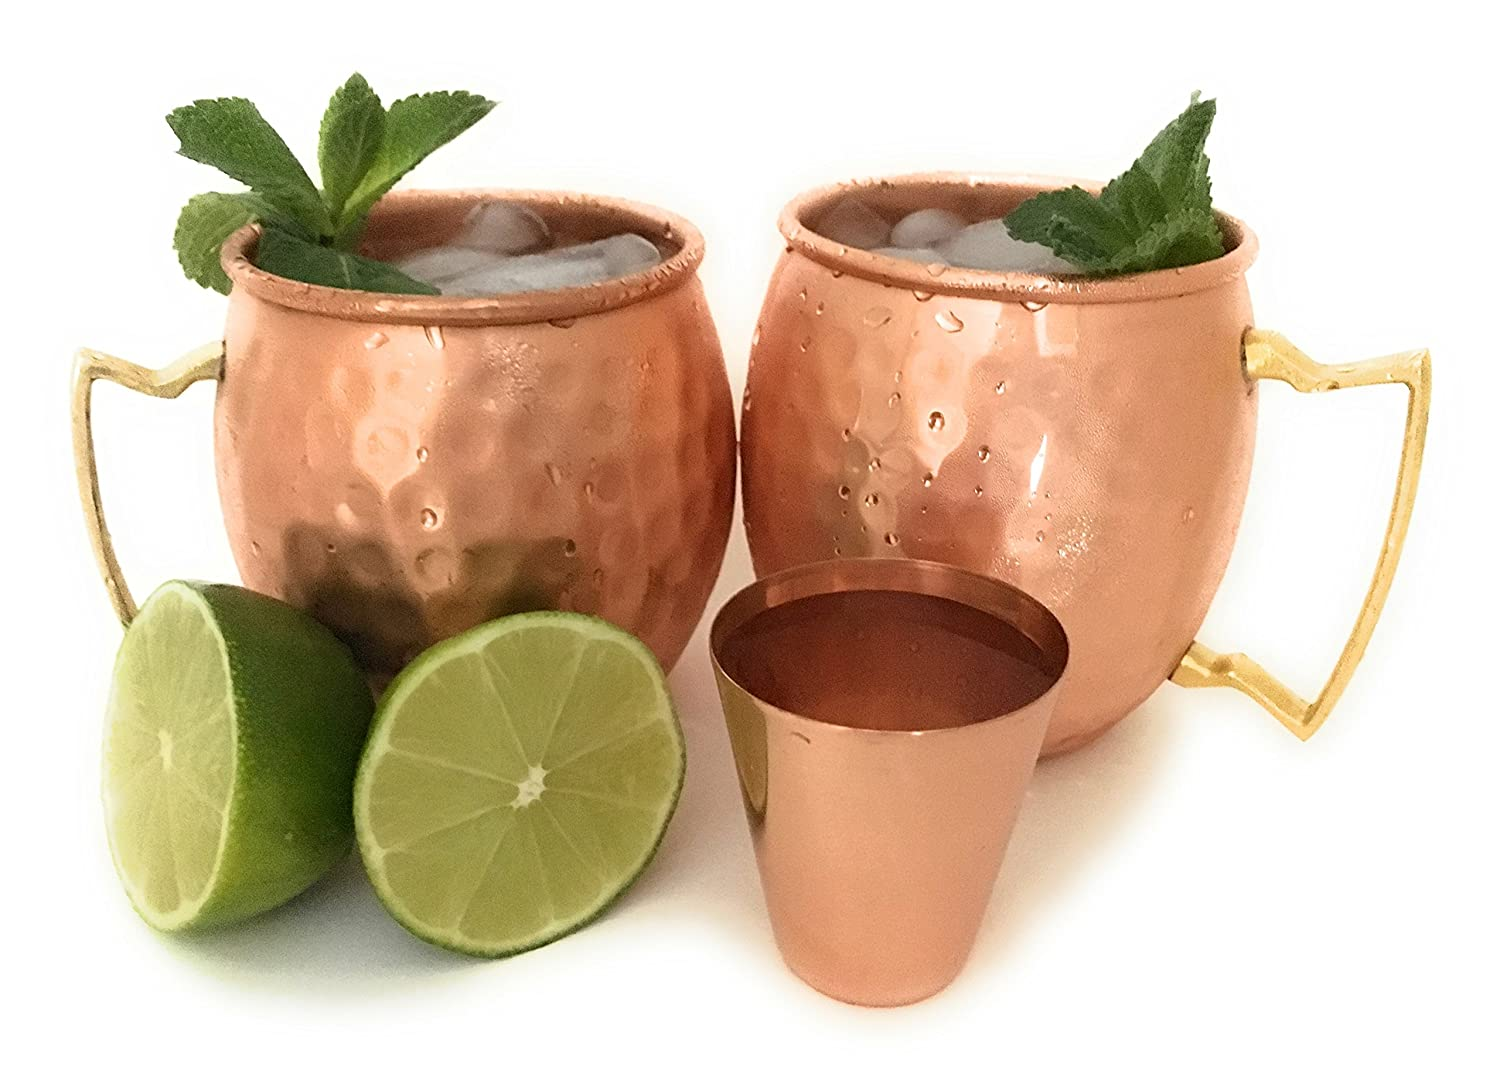 Official Moscow Mule Copper Mug Gift Set by Sterling Chef with Pure Copper 16 Ounce Mugs Plus Shot Glass in Hand Hammered Copper - Gift Set of 2 Cups